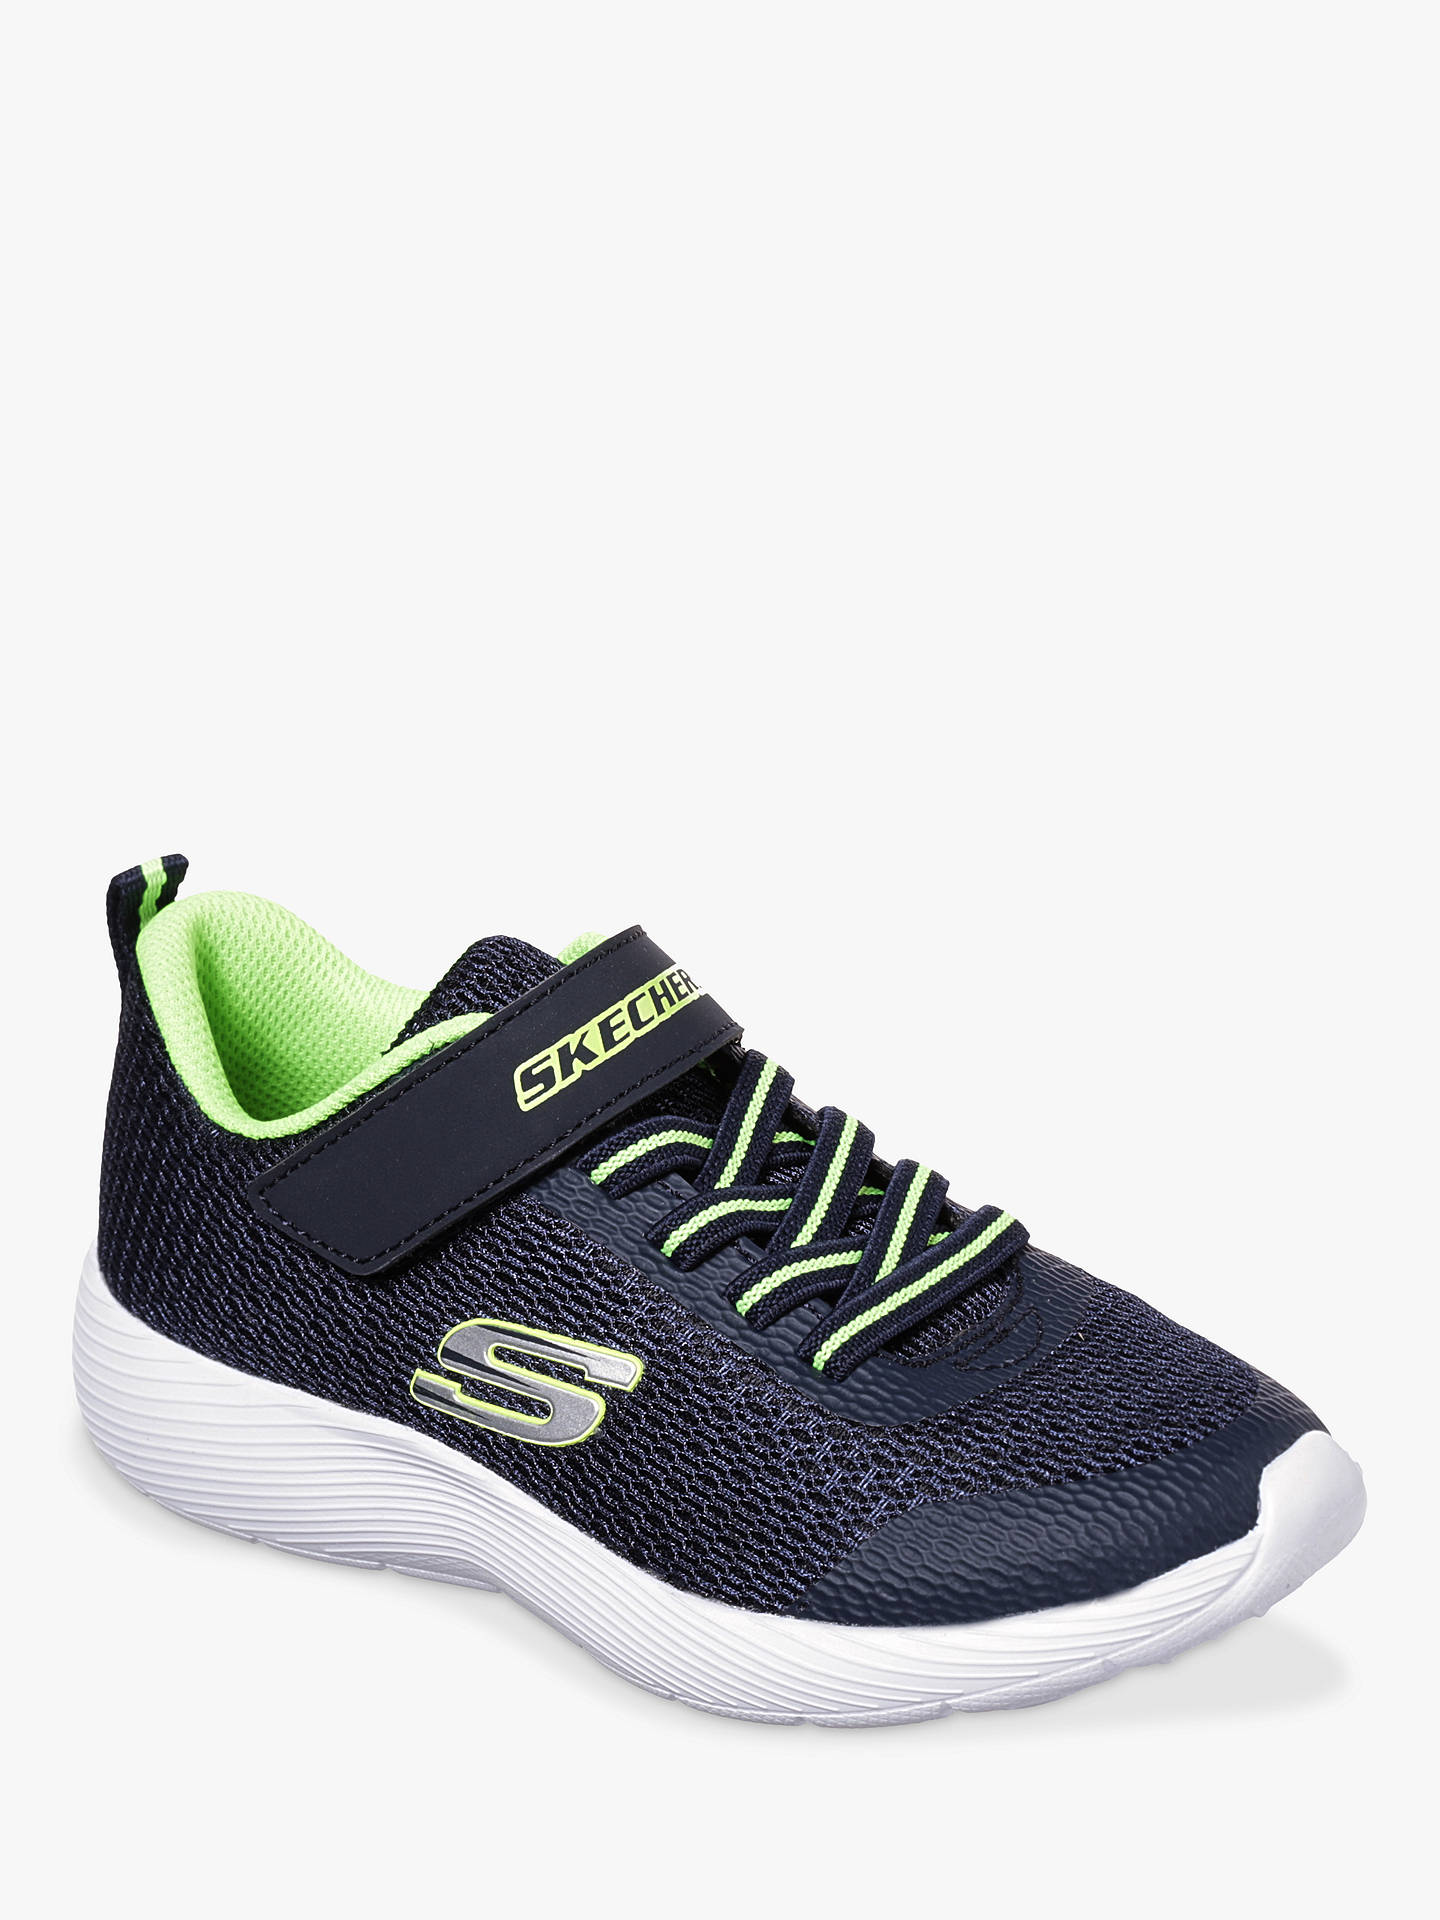 Skechers Boys' Dyna lite Trainers